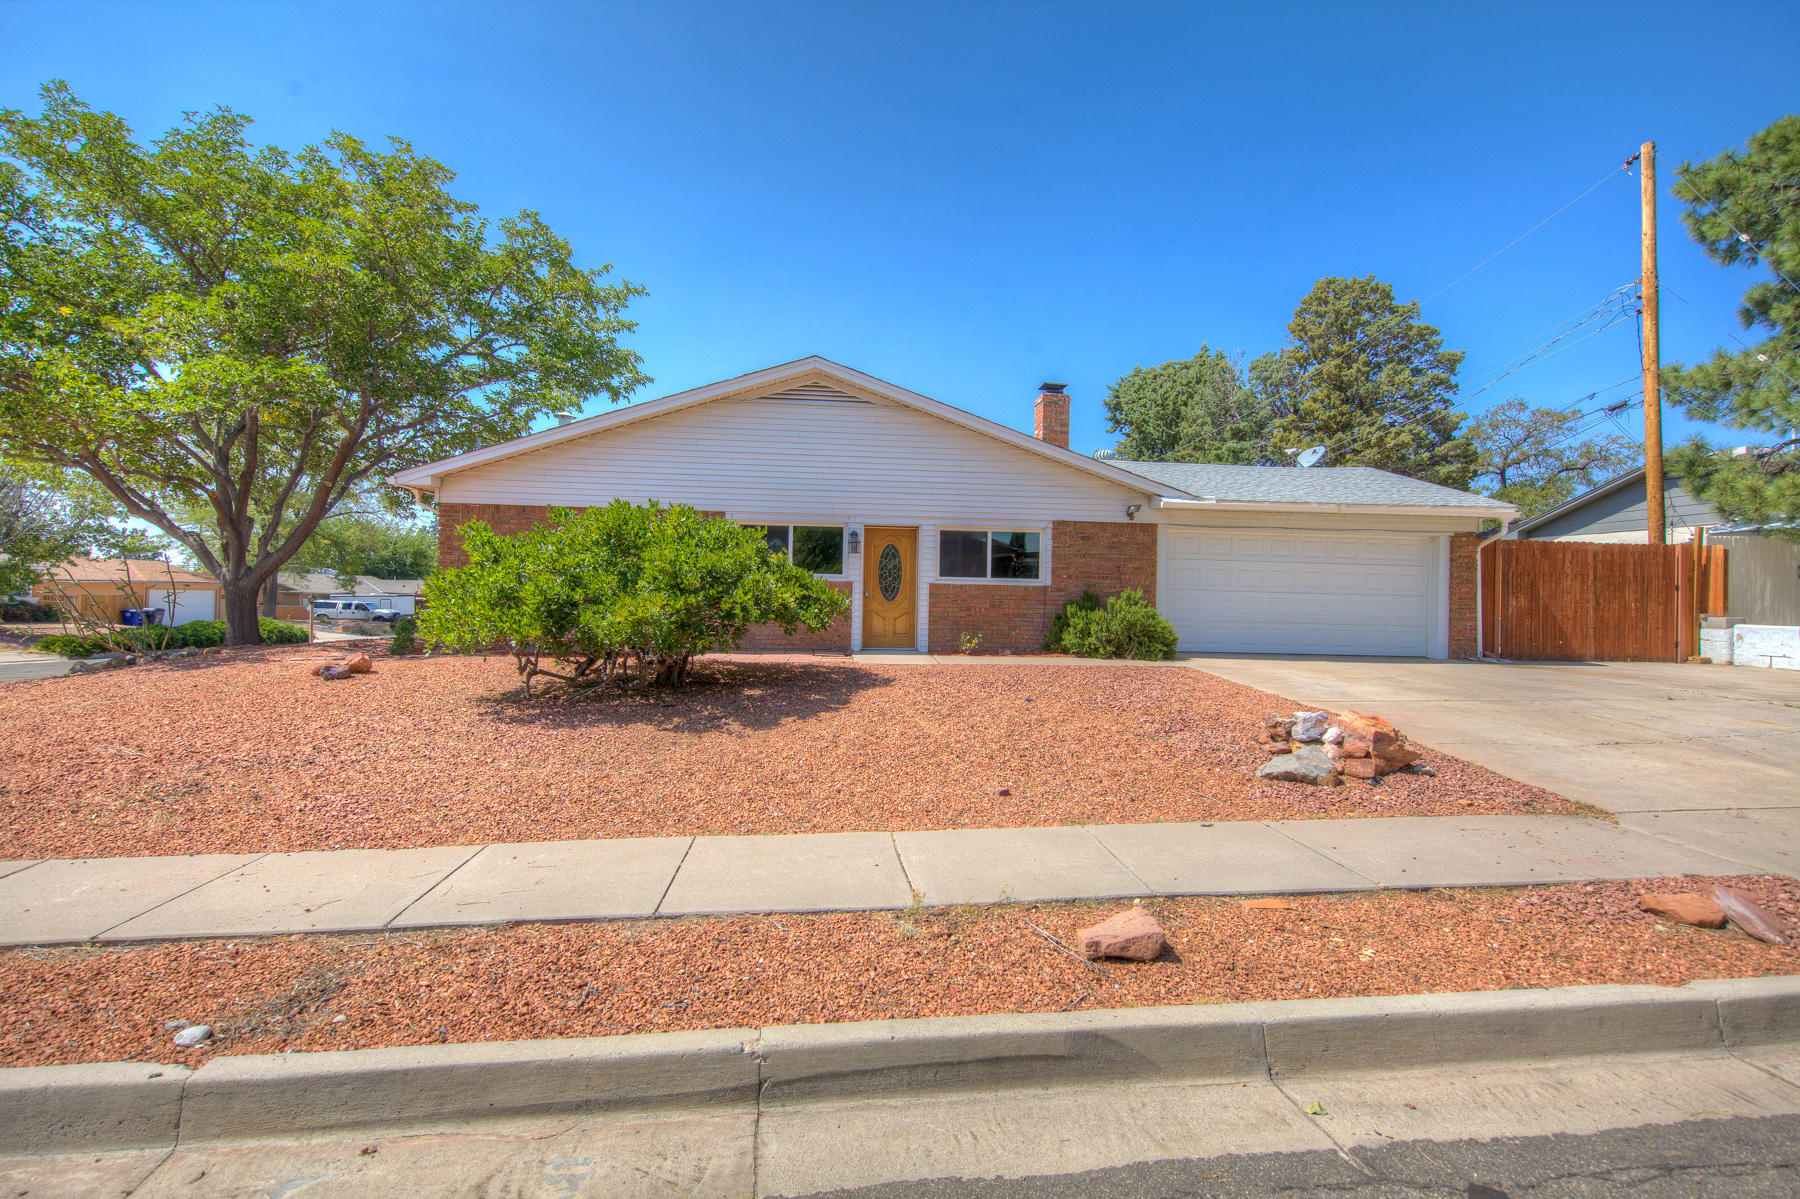 Welcome to your new home. New laminate flooring throughout the home. The kitchen has been remodeled with new counter tops , cabinetry, and appliances. Oversized corner lot with backyard access. The garage is larger with a small workshop for those weekend DIY  projects.